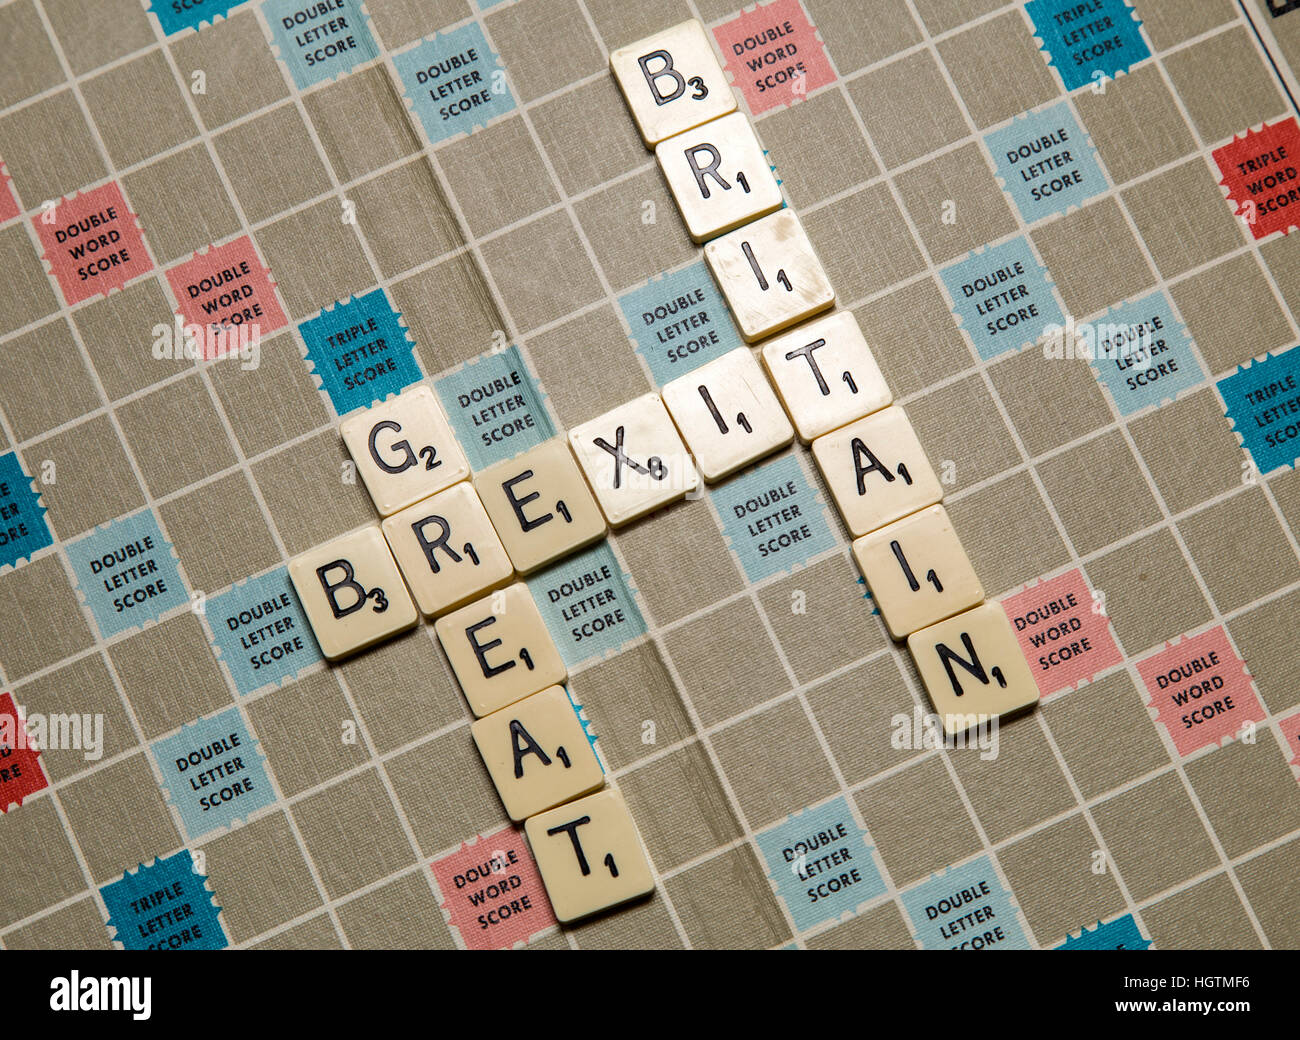 Scrabble letters spelling out Brexit Great Britain in letters - Stock Image